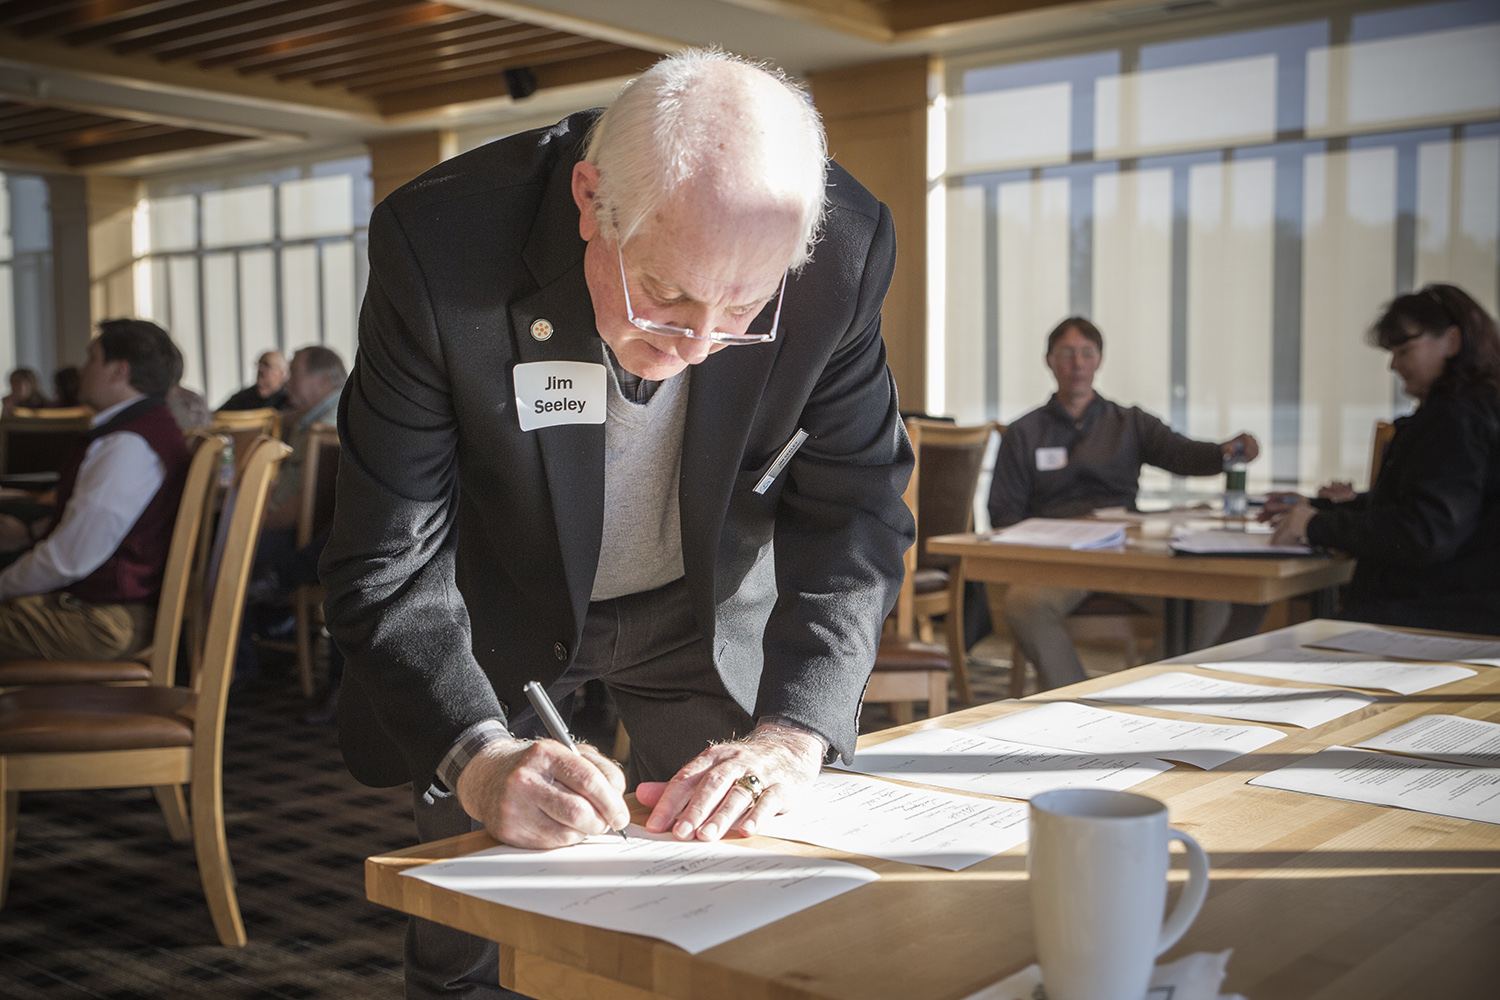 Jim Seeley,Executive Director of the Wild Rivers Coast Alliance and Co-convener of the Oregon Solutions Gorse Project, seen signing the DOC.